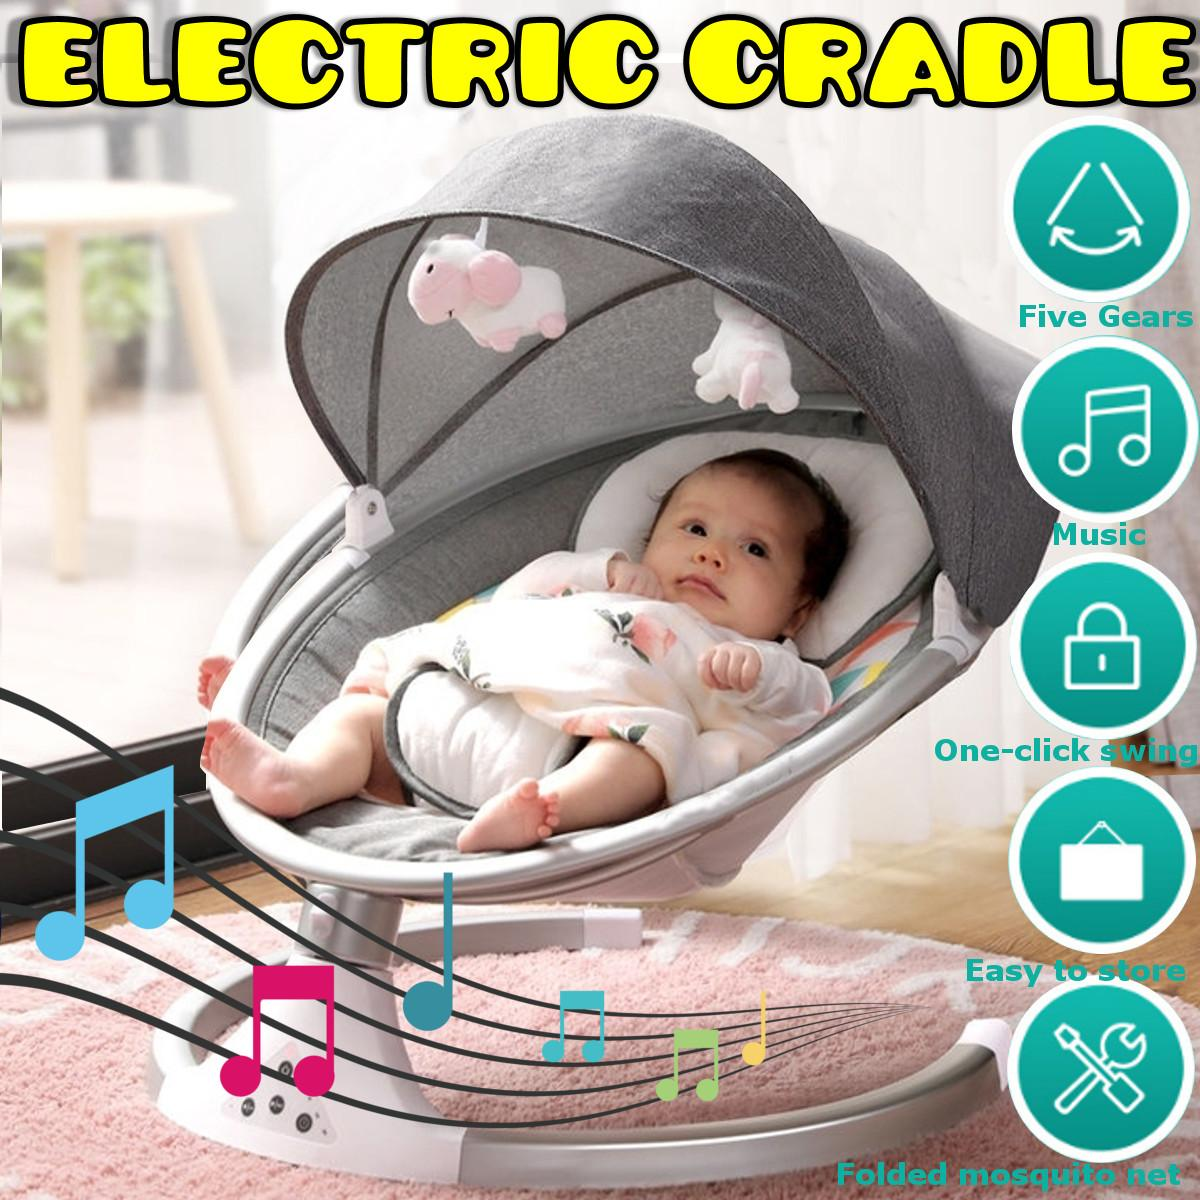 635*635*150mm Newborn Baby Sleeping Swing Bouncer Rocking Soothing Electric Cradle Rocker Chair With Seat Cushion